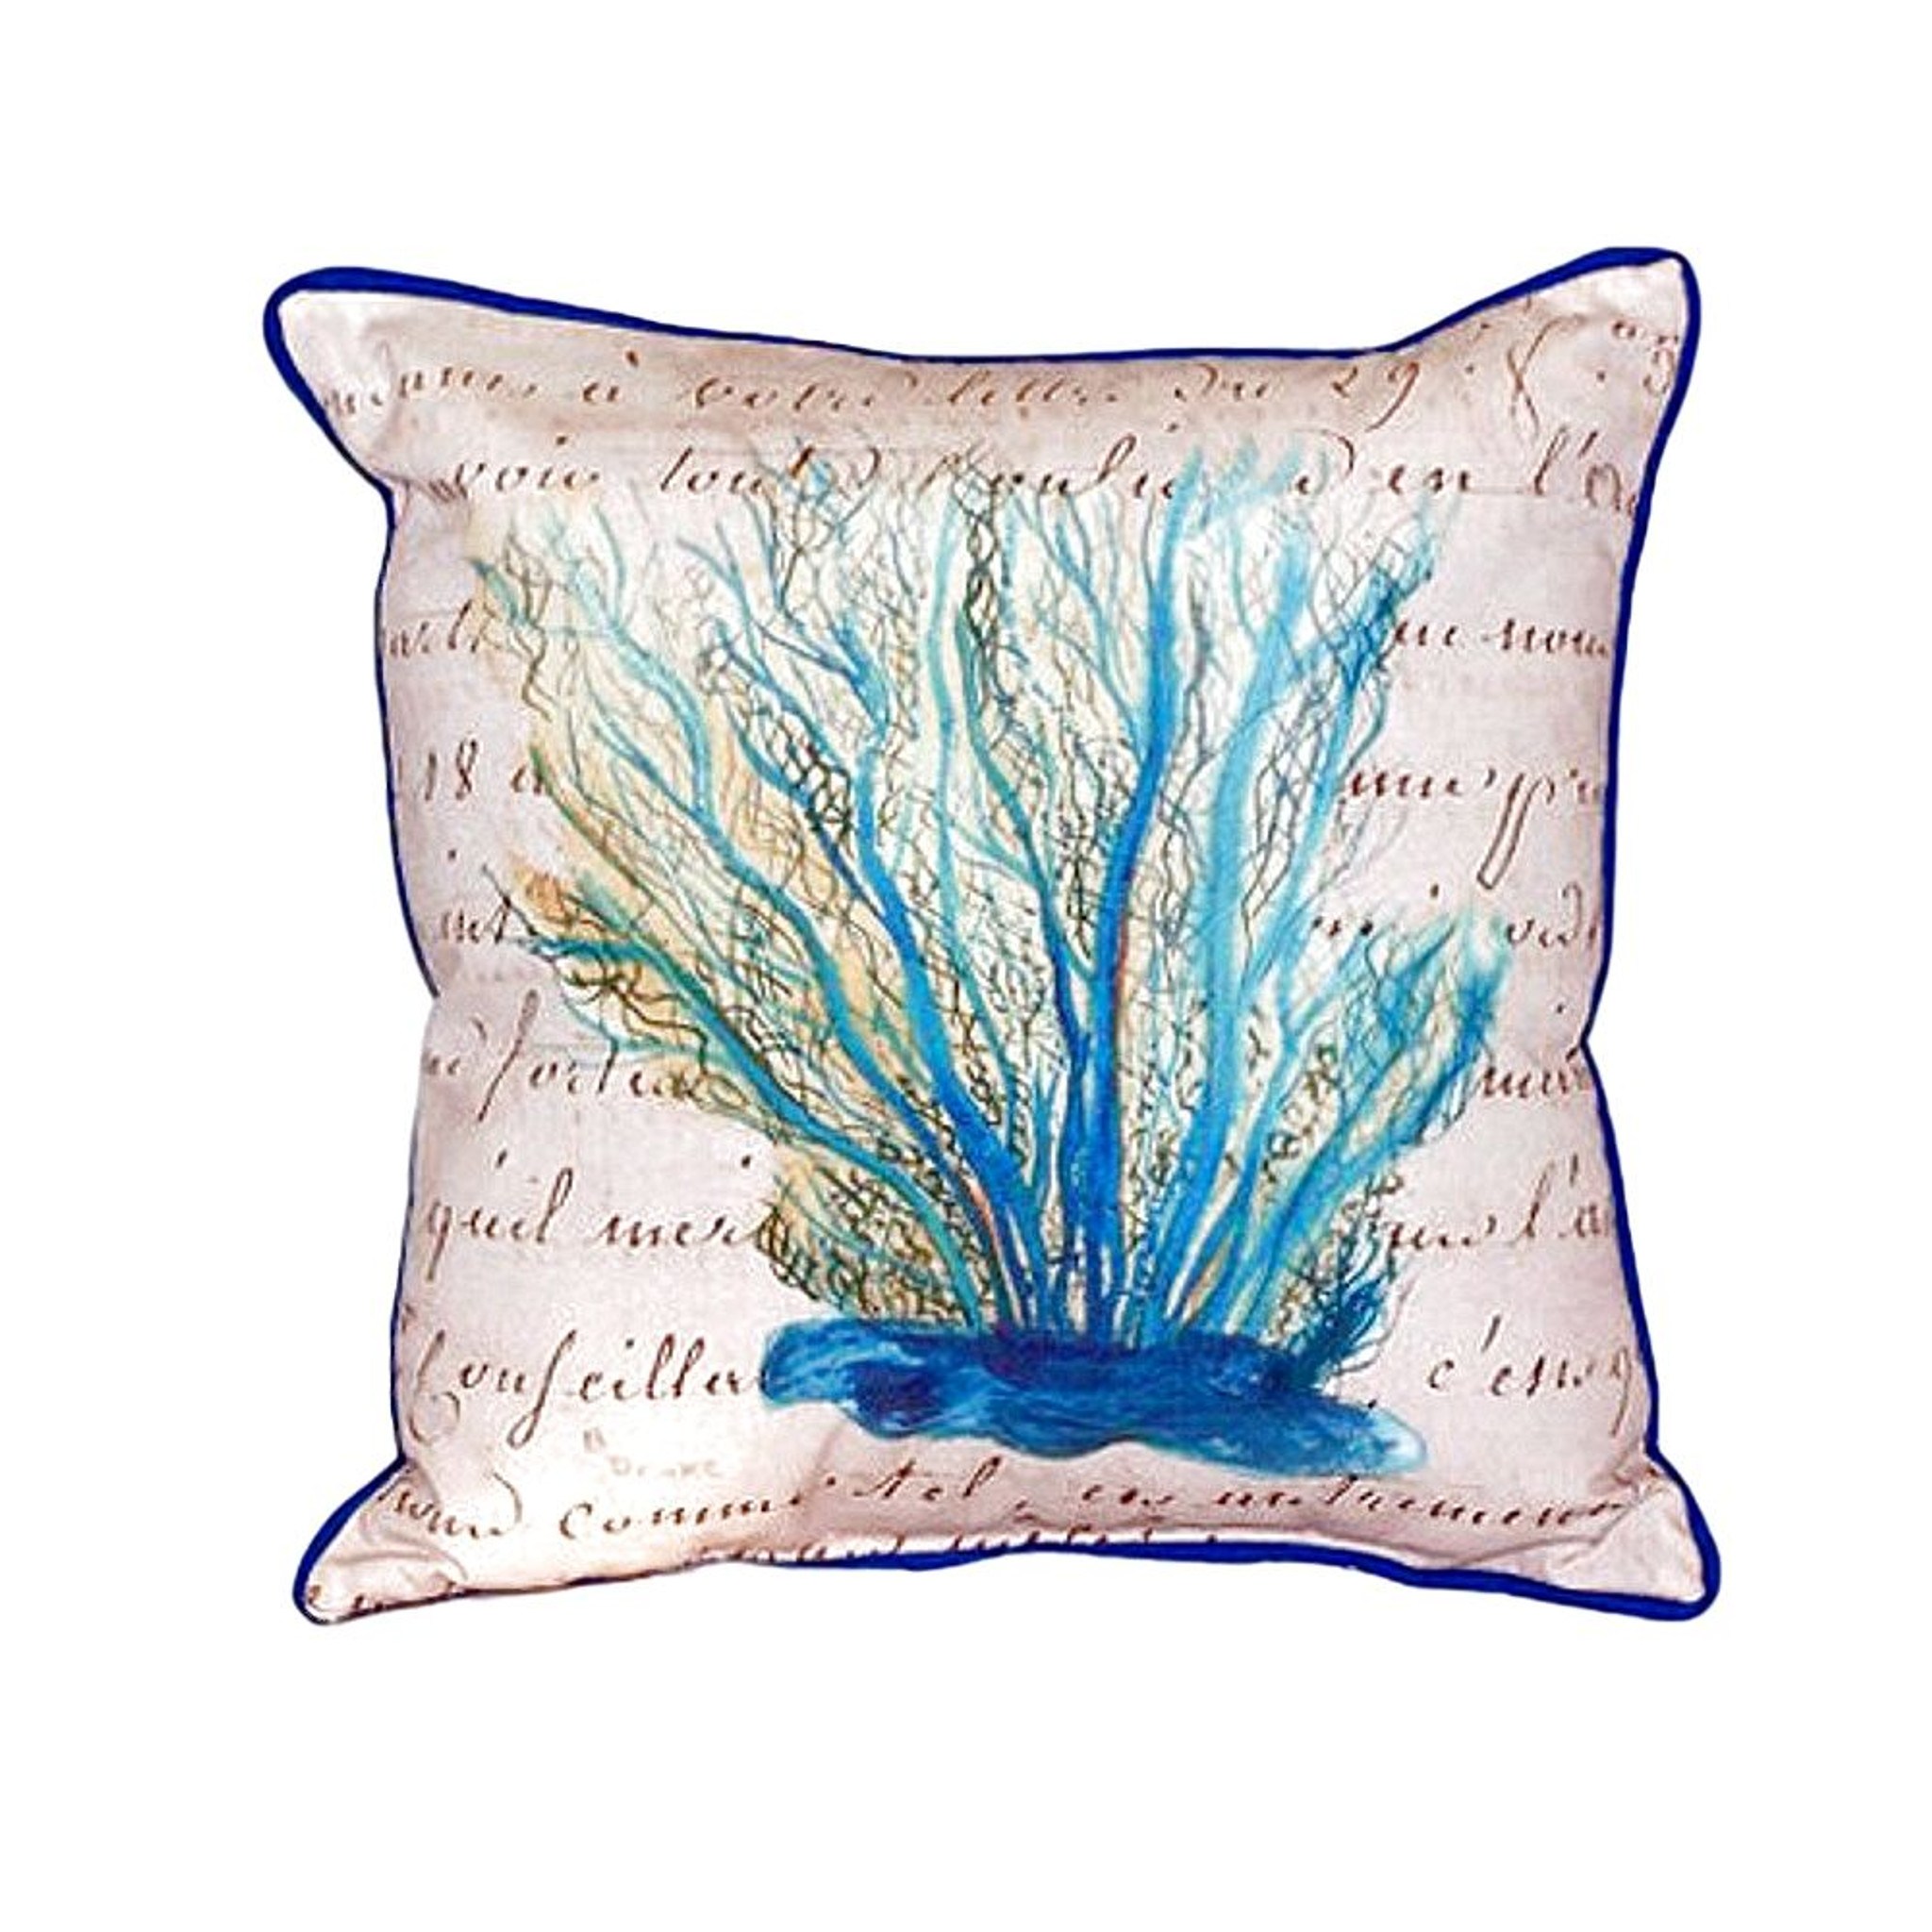 Blue Coral Throw Pillow : Blue Coral Script Throw Pillow